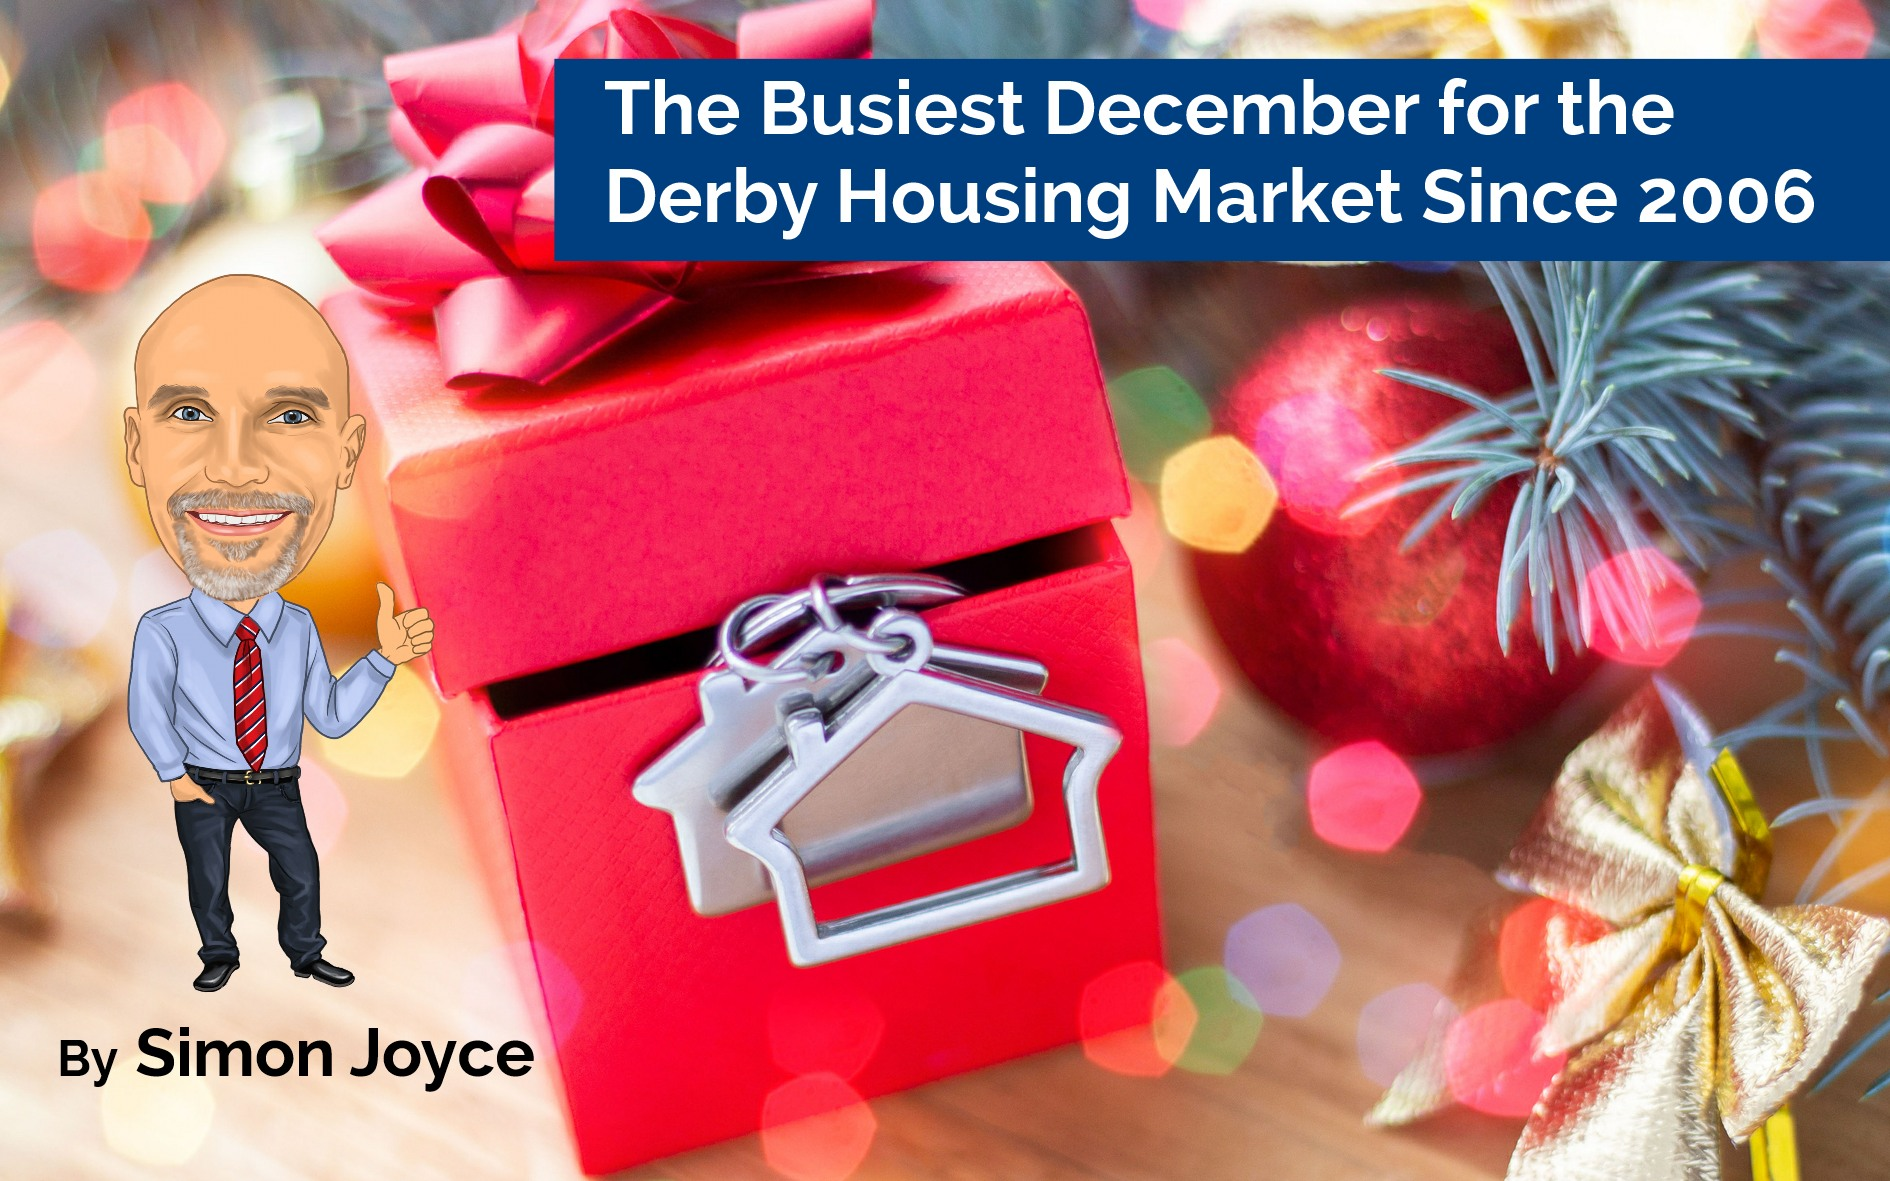 The Busiest December for the Derby Housing Market Since 2006